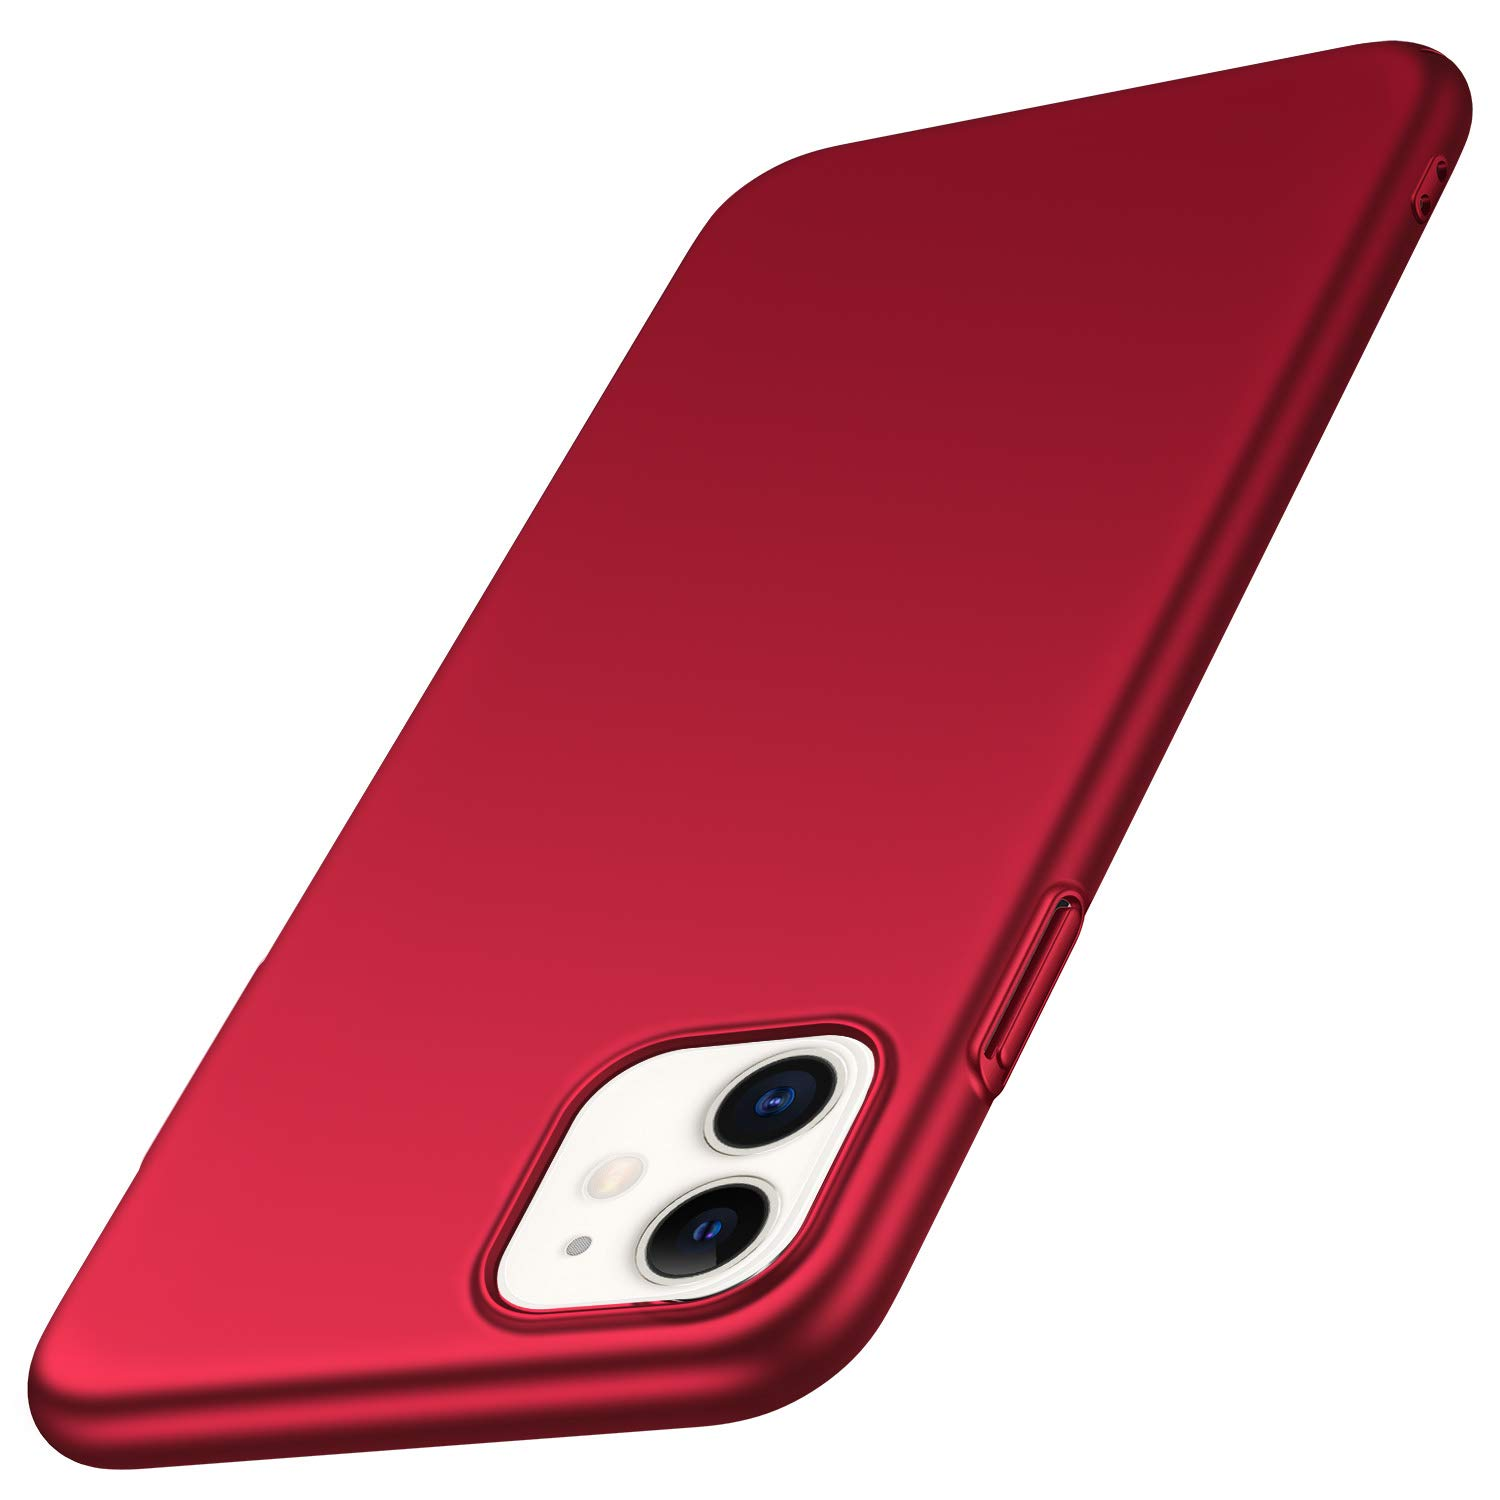 SHIWELY Ultra Thin iPhone 11 Case, Hard Polycarbonate PC Slim Fit Silky Smooth Phone Cover Case with Matte Finish for iPhone 11 (Red)